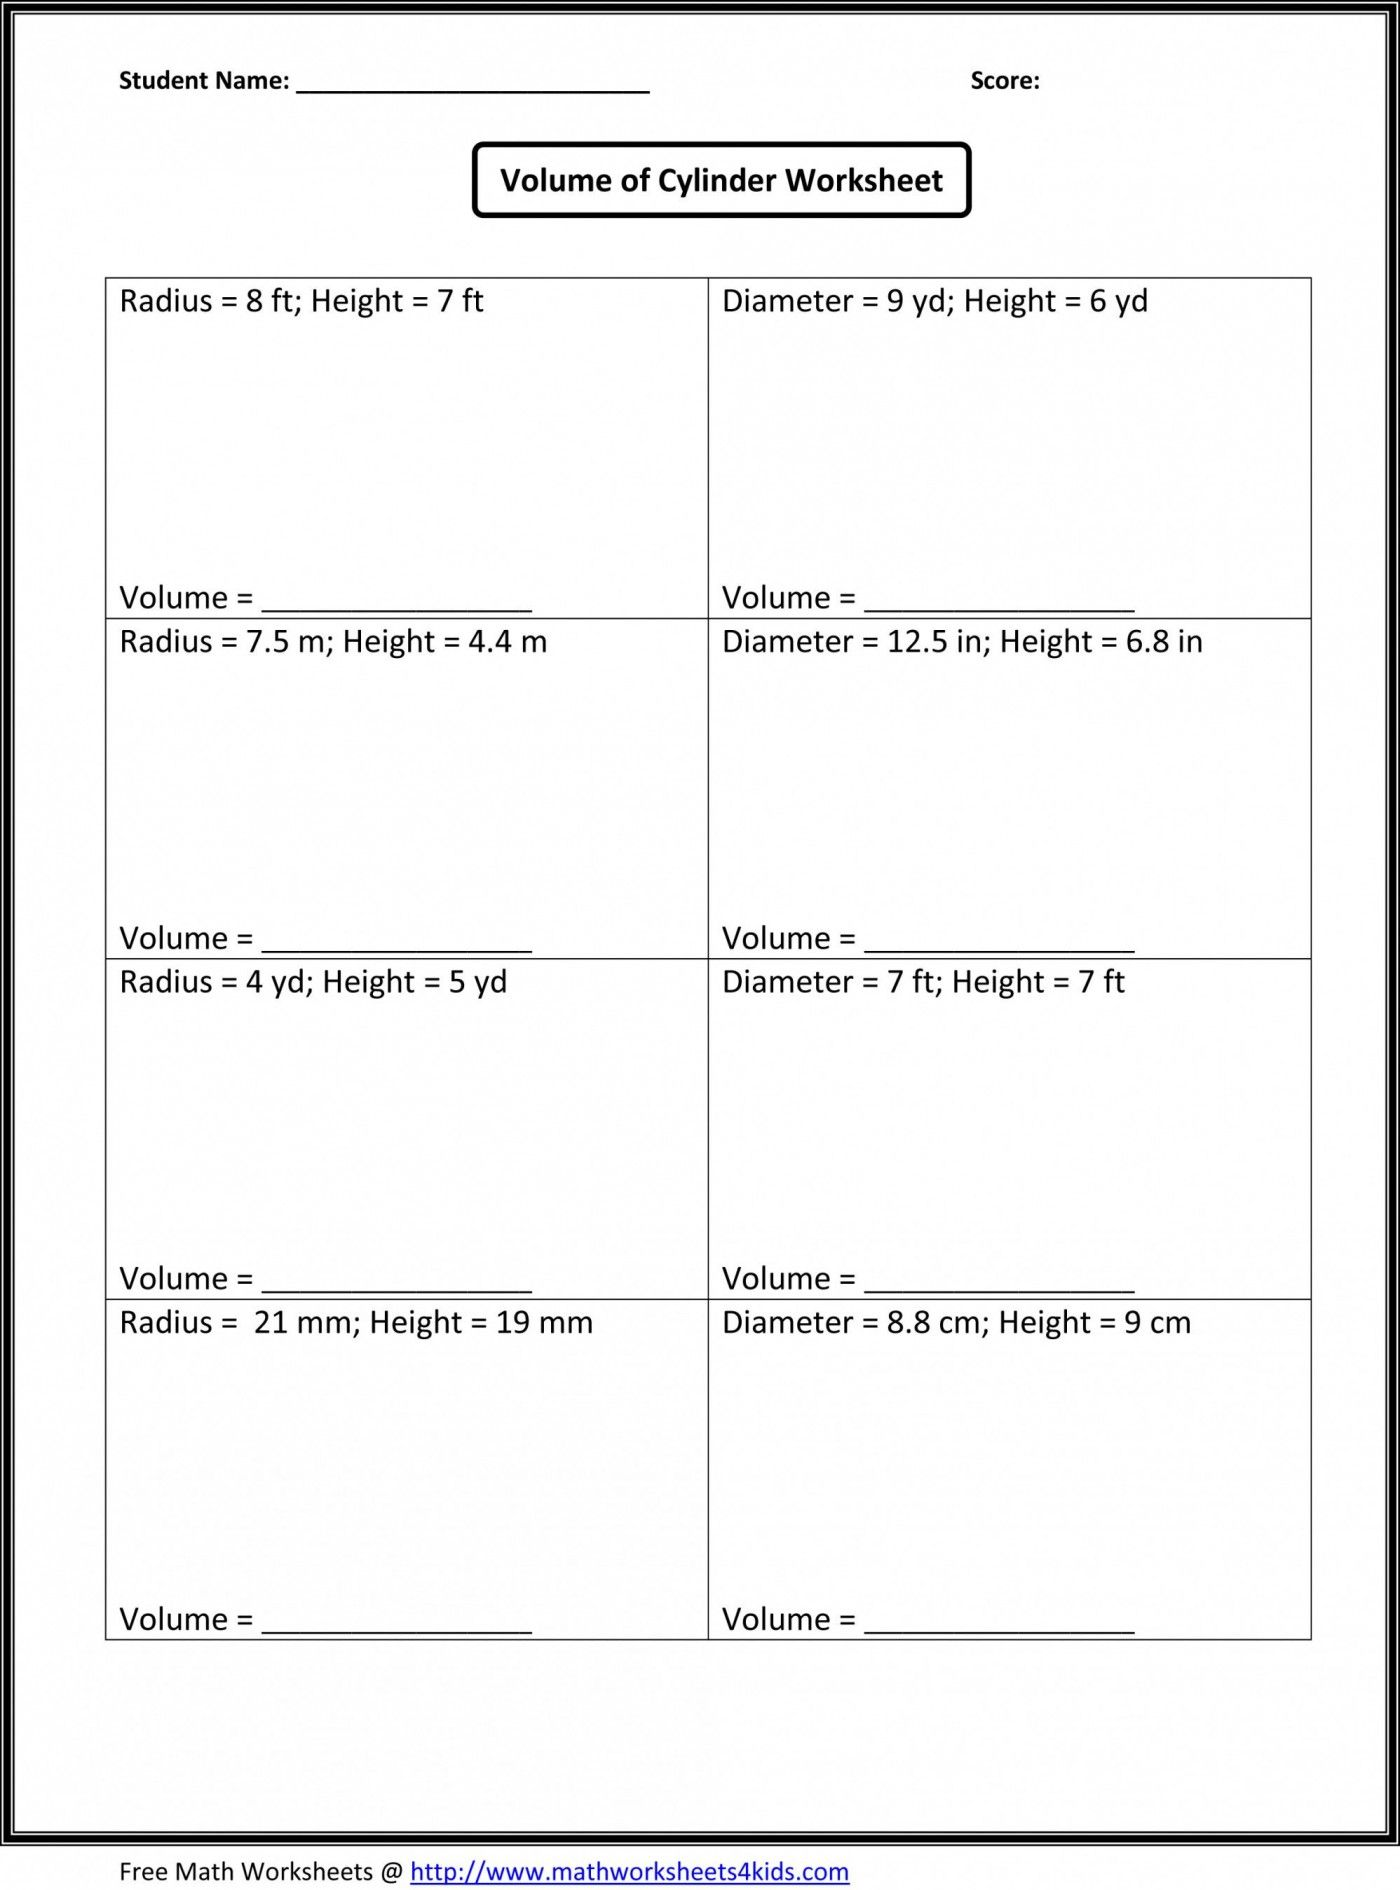 41 Simple Ratio Worksheets Design